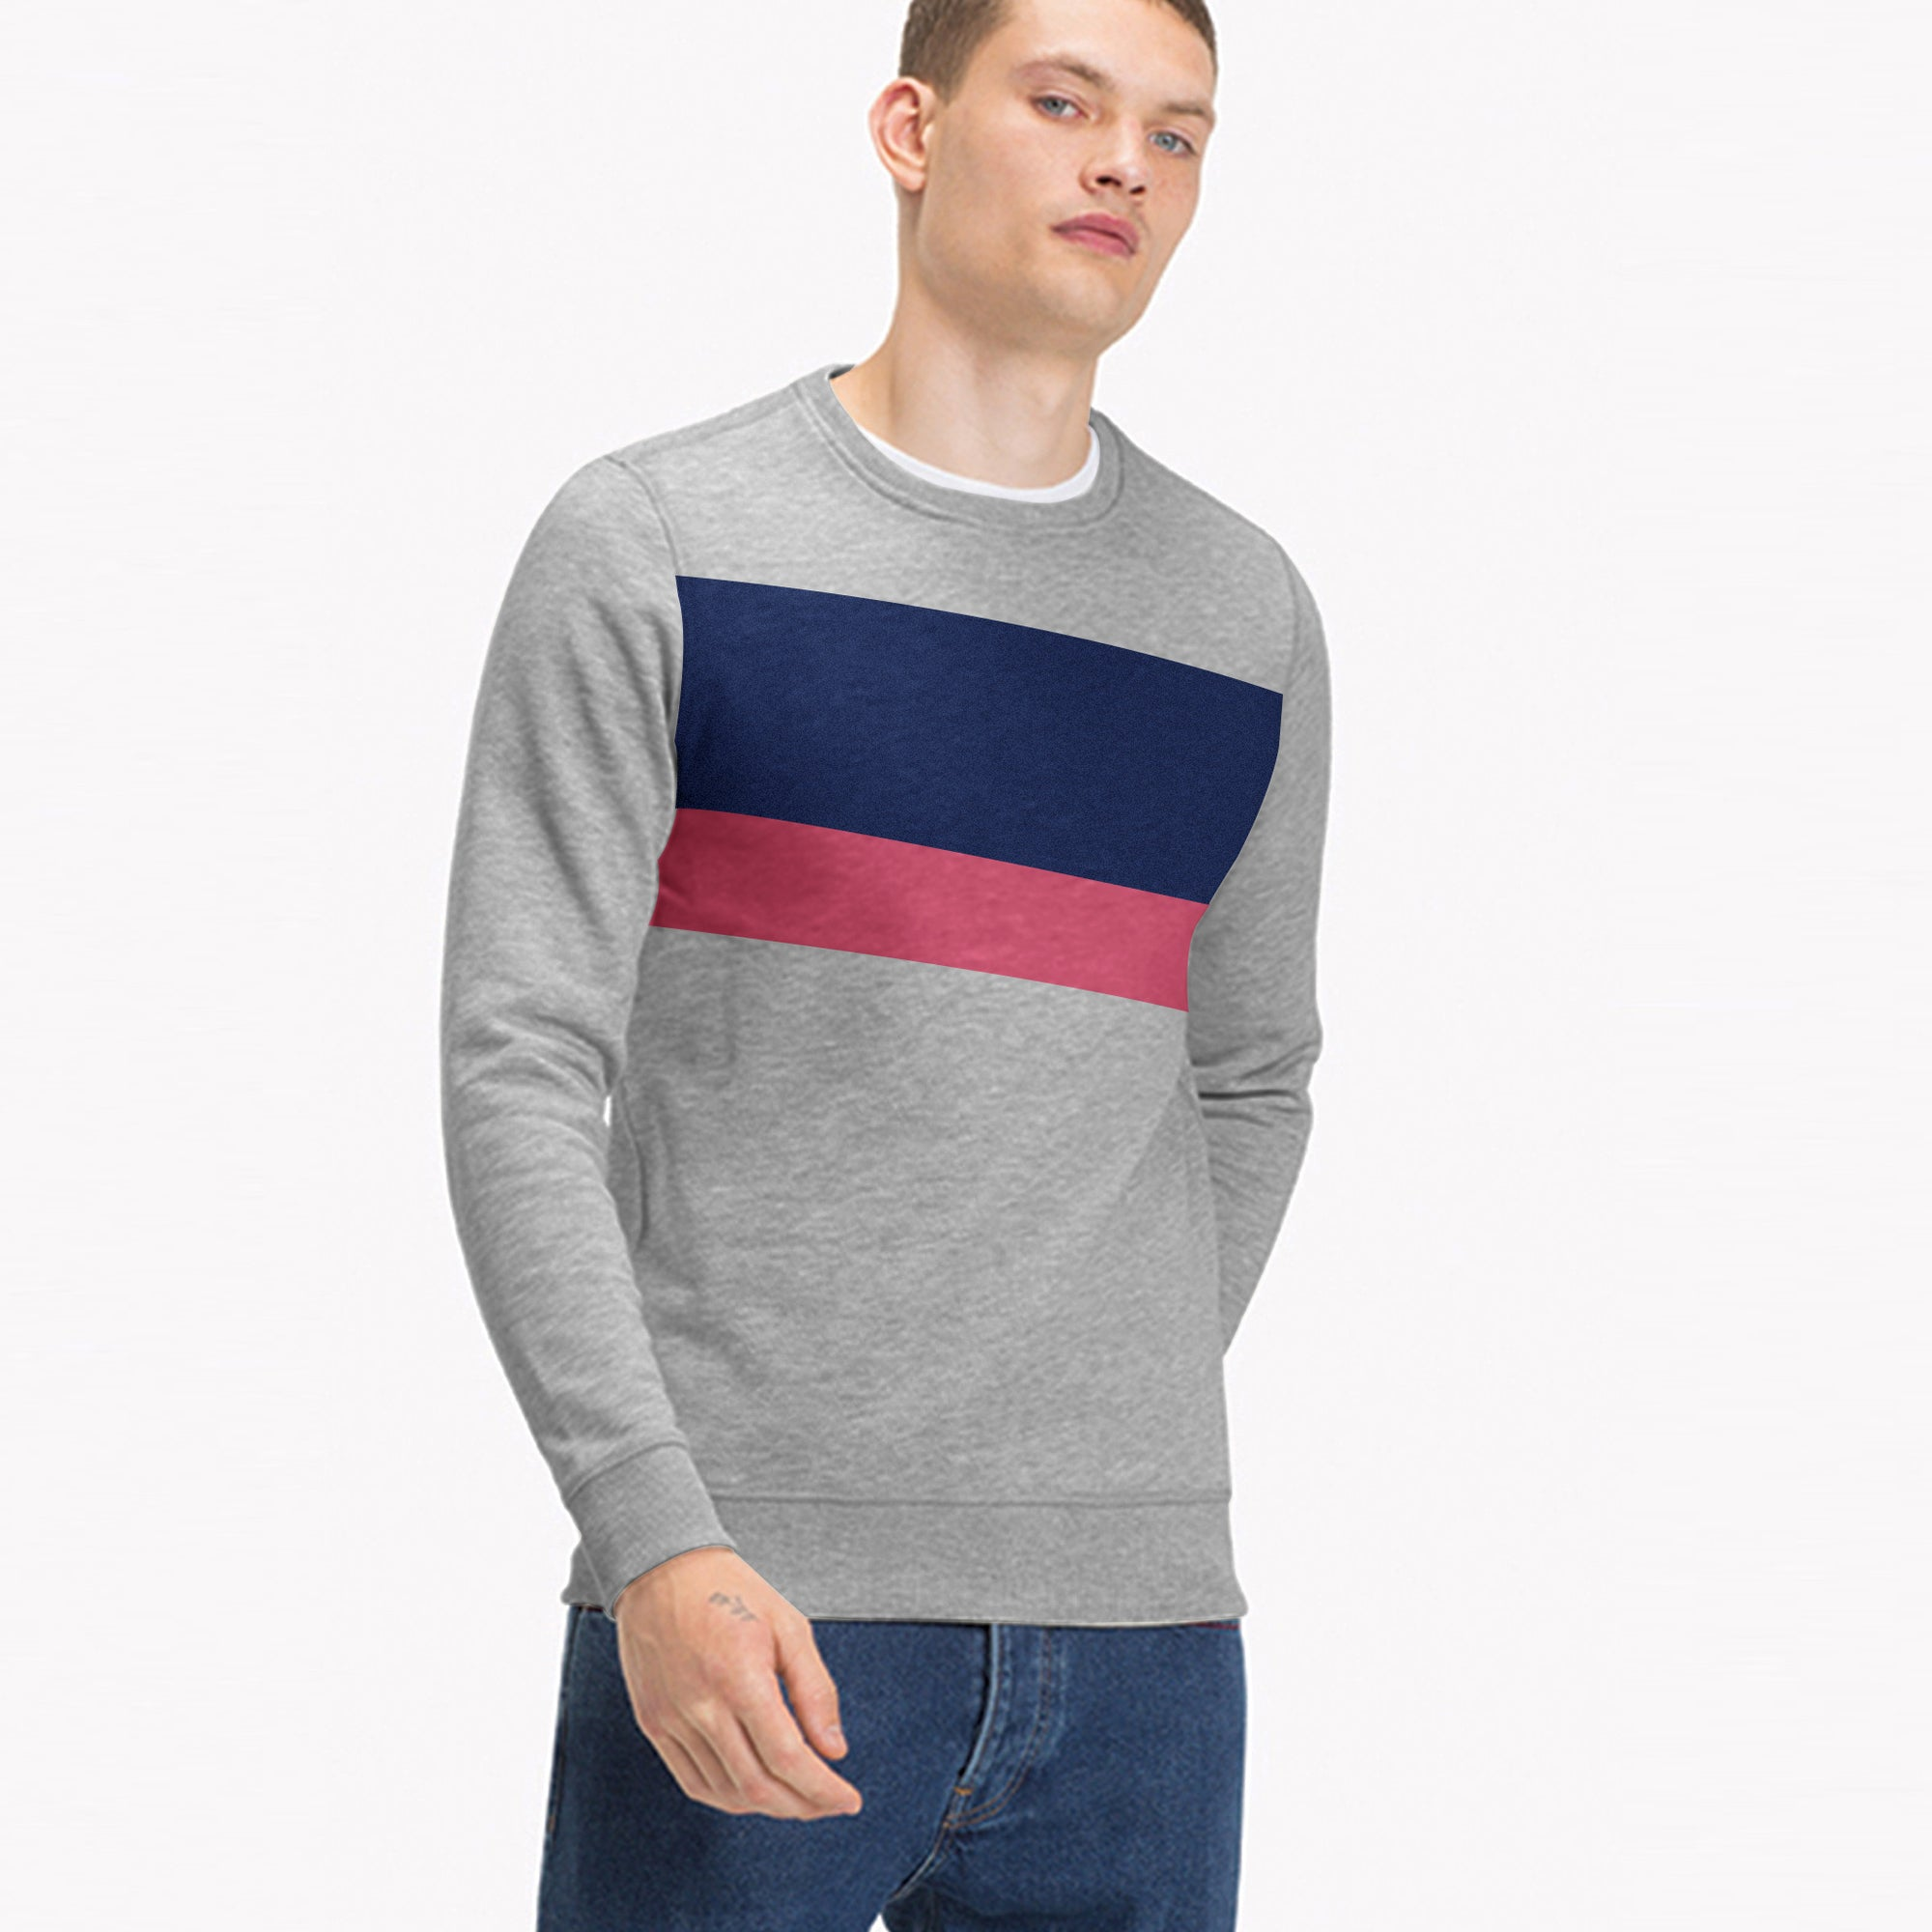 Next Terry Fleece Crew Neck Sweatshirt For Men-Grey Melange with Panels-SP1586